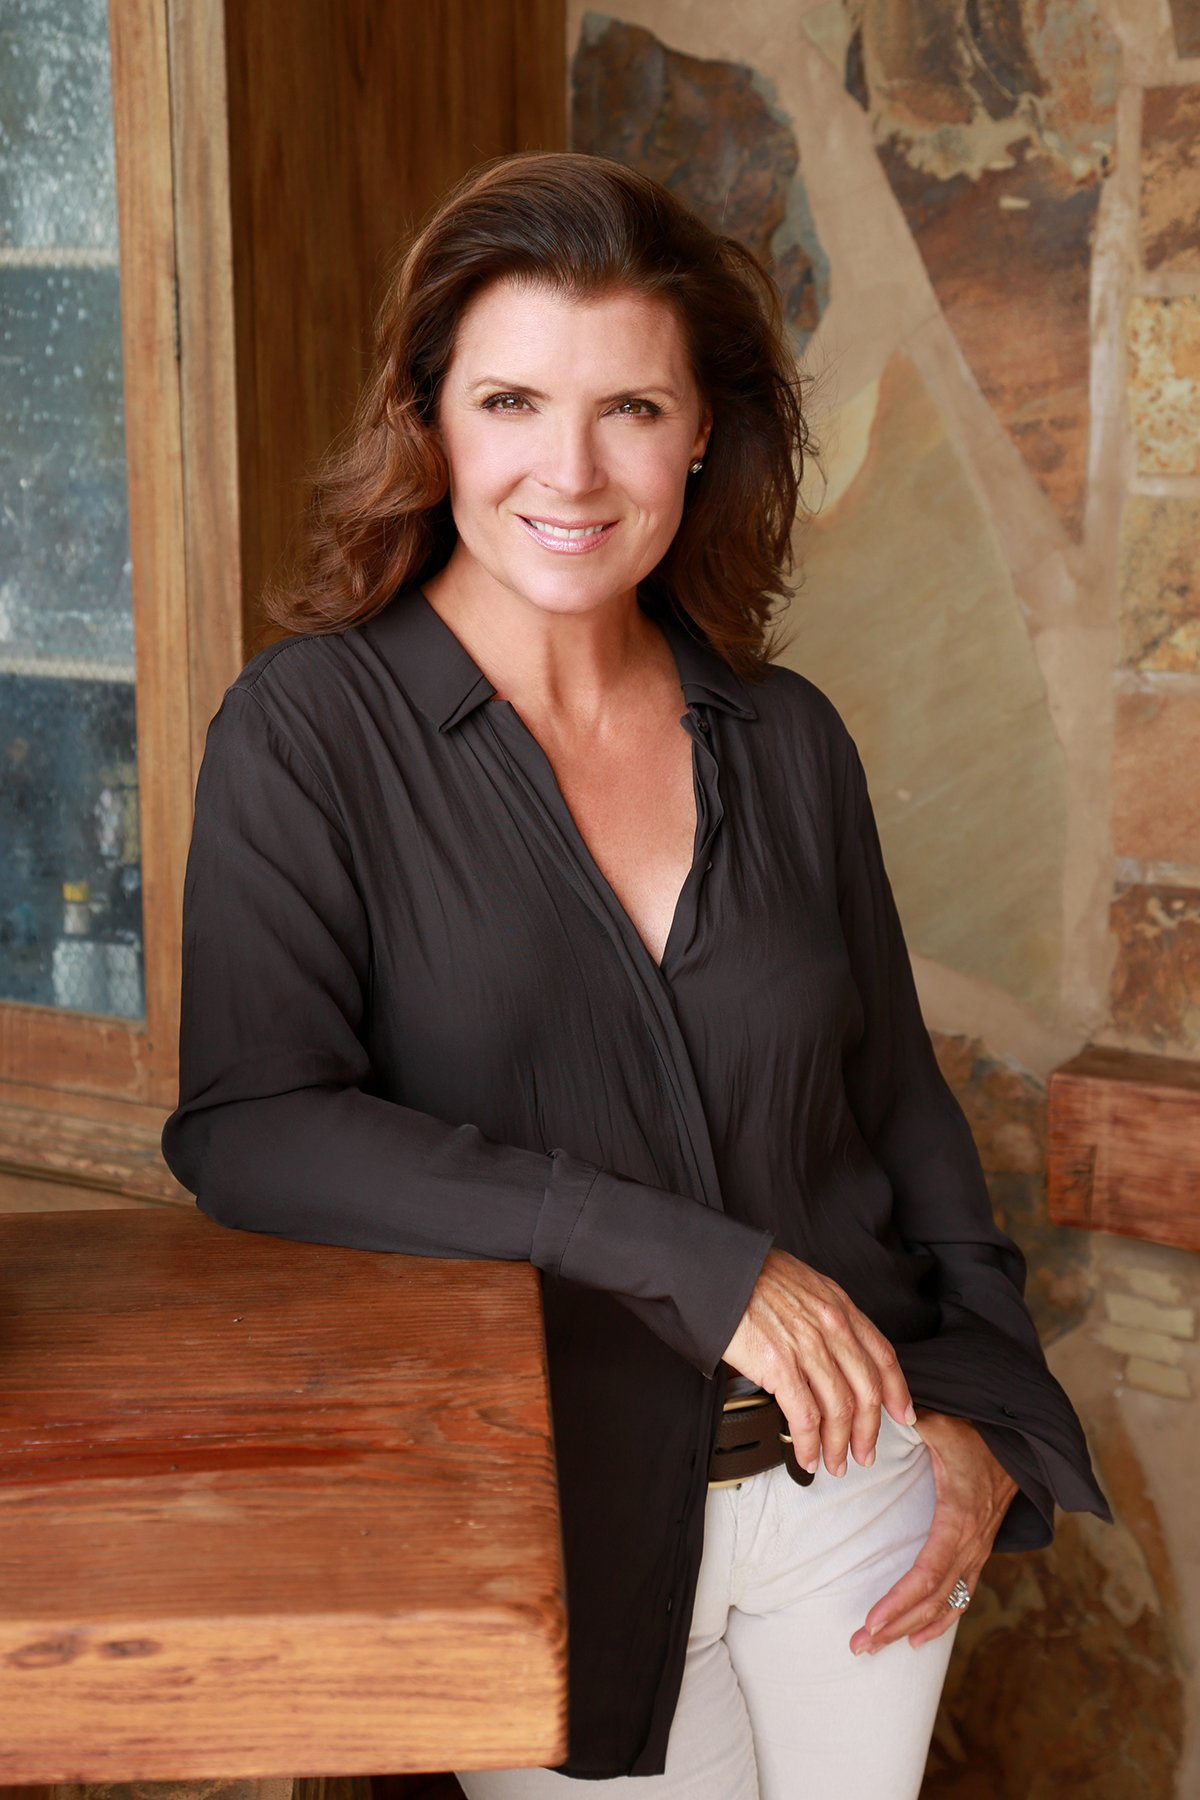 Kimberlin Brown naked (88 photo), Topless, Paparazzi, Feet, bra 2017